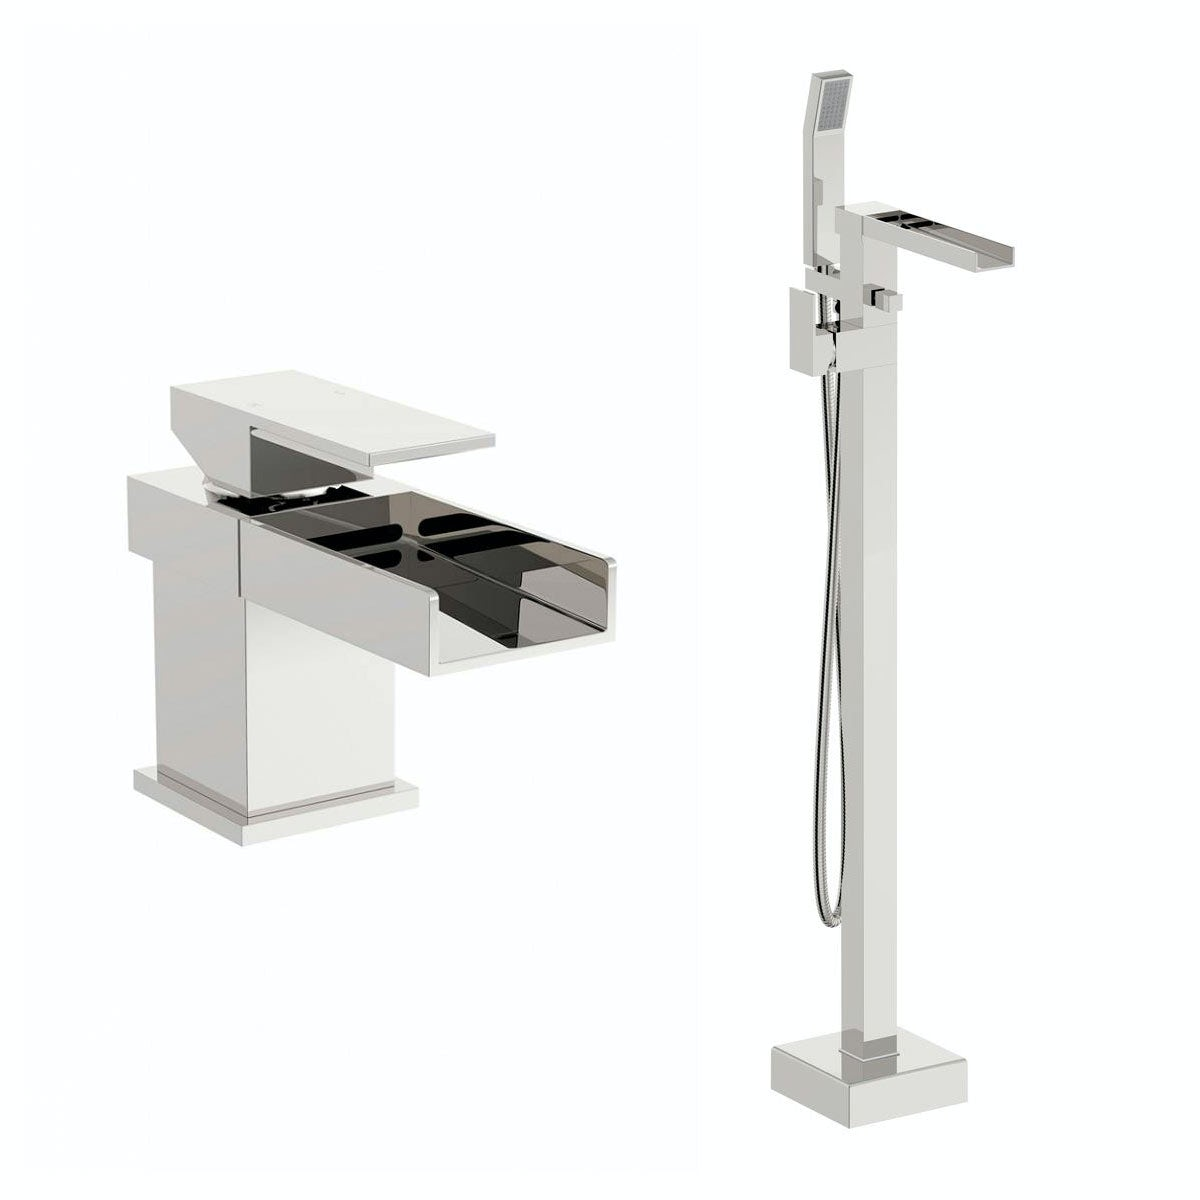 mode carter basin mixer and bath shower standpipe pack free delivery carter basin mixer and bath shower standpipe pack